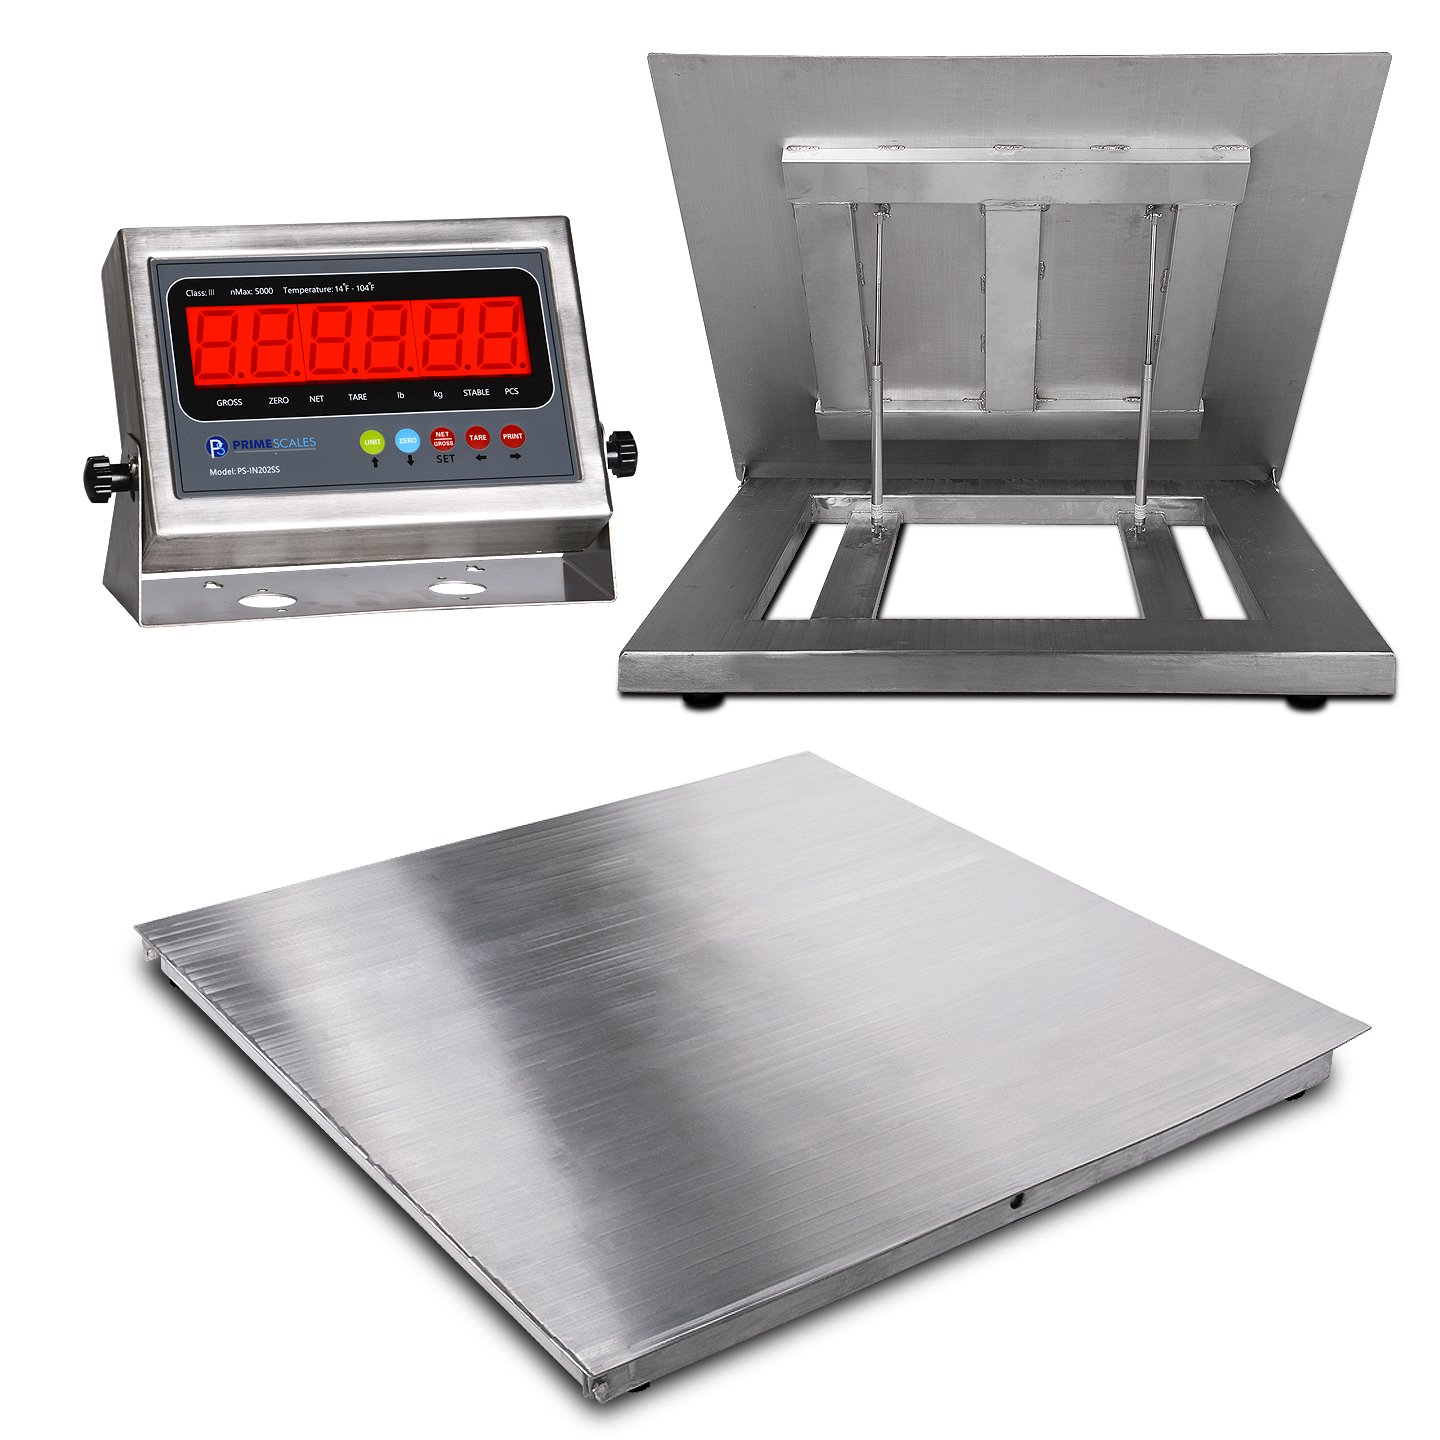 PS-SSF Stainless Steel Floor Scale with Stainless Steel Indicator (48x48 Inches)